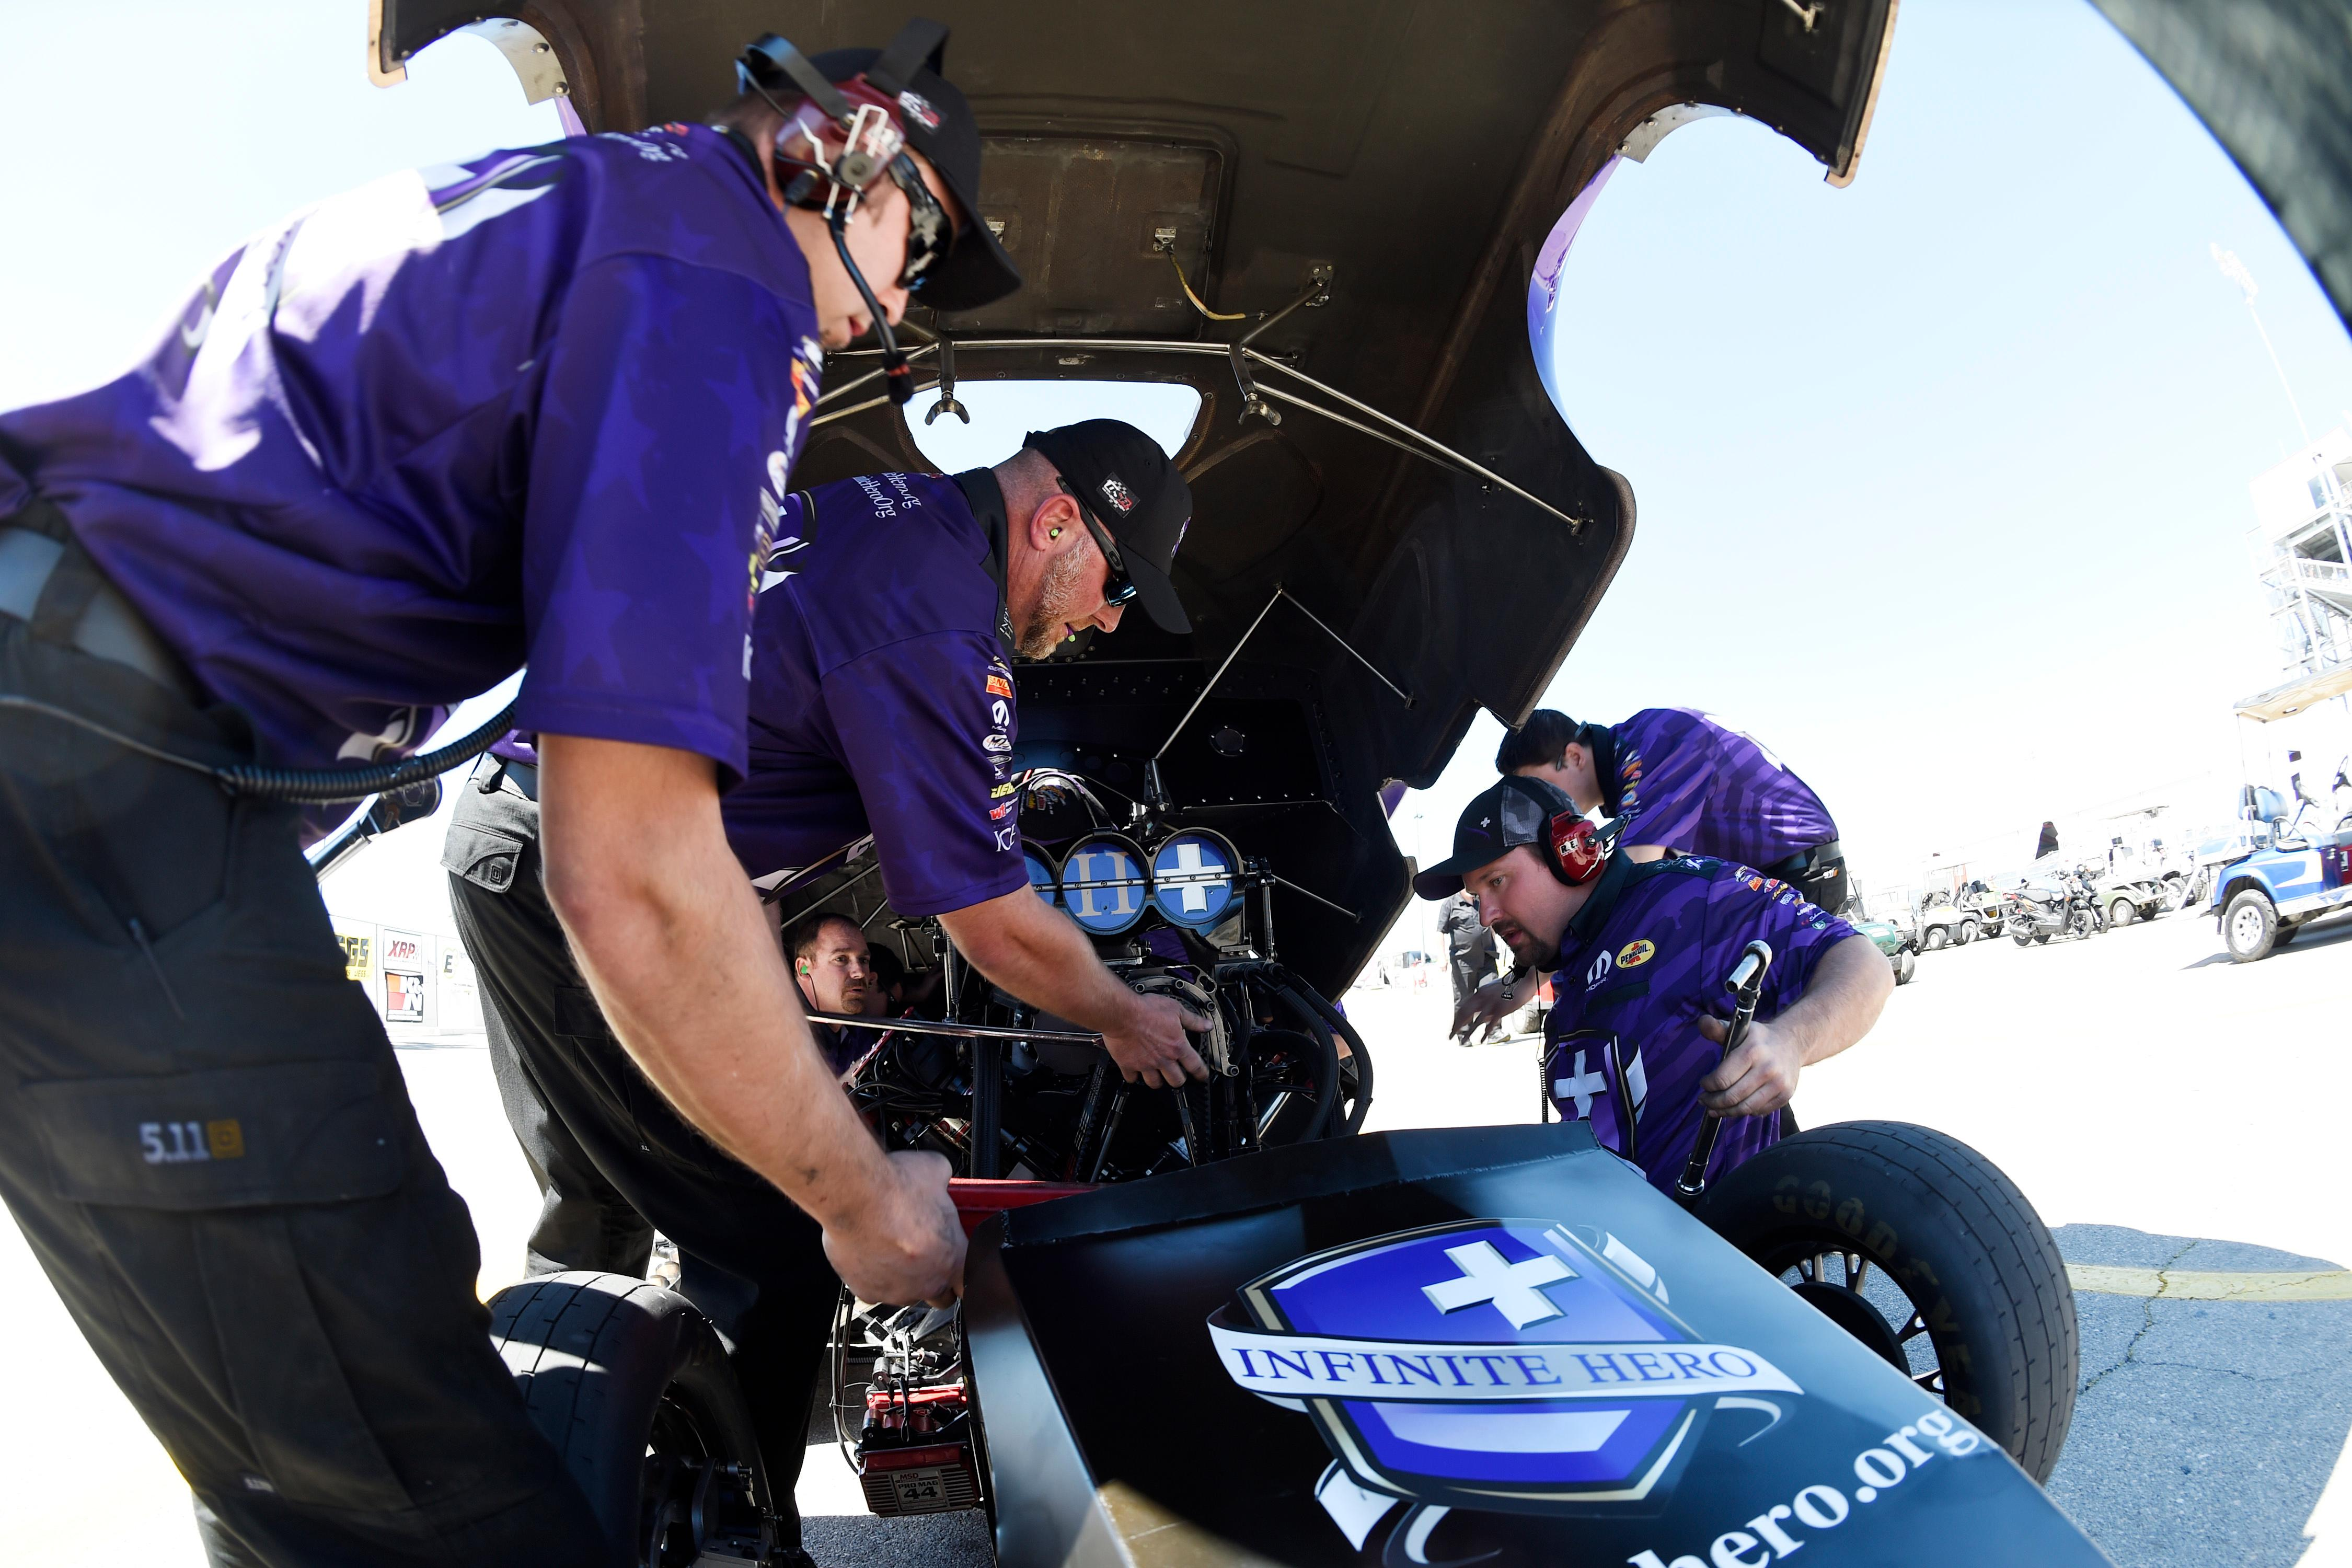 Funny Car driver Jack Beckman's crew members make final adjustments to their car during the NHRA DENSO Spark Plug Nationals at The Strip at the Las Vegas Motor Speedway Sunday, April 2, 2017. (Sam Morris/Las Vegas News Bureau)